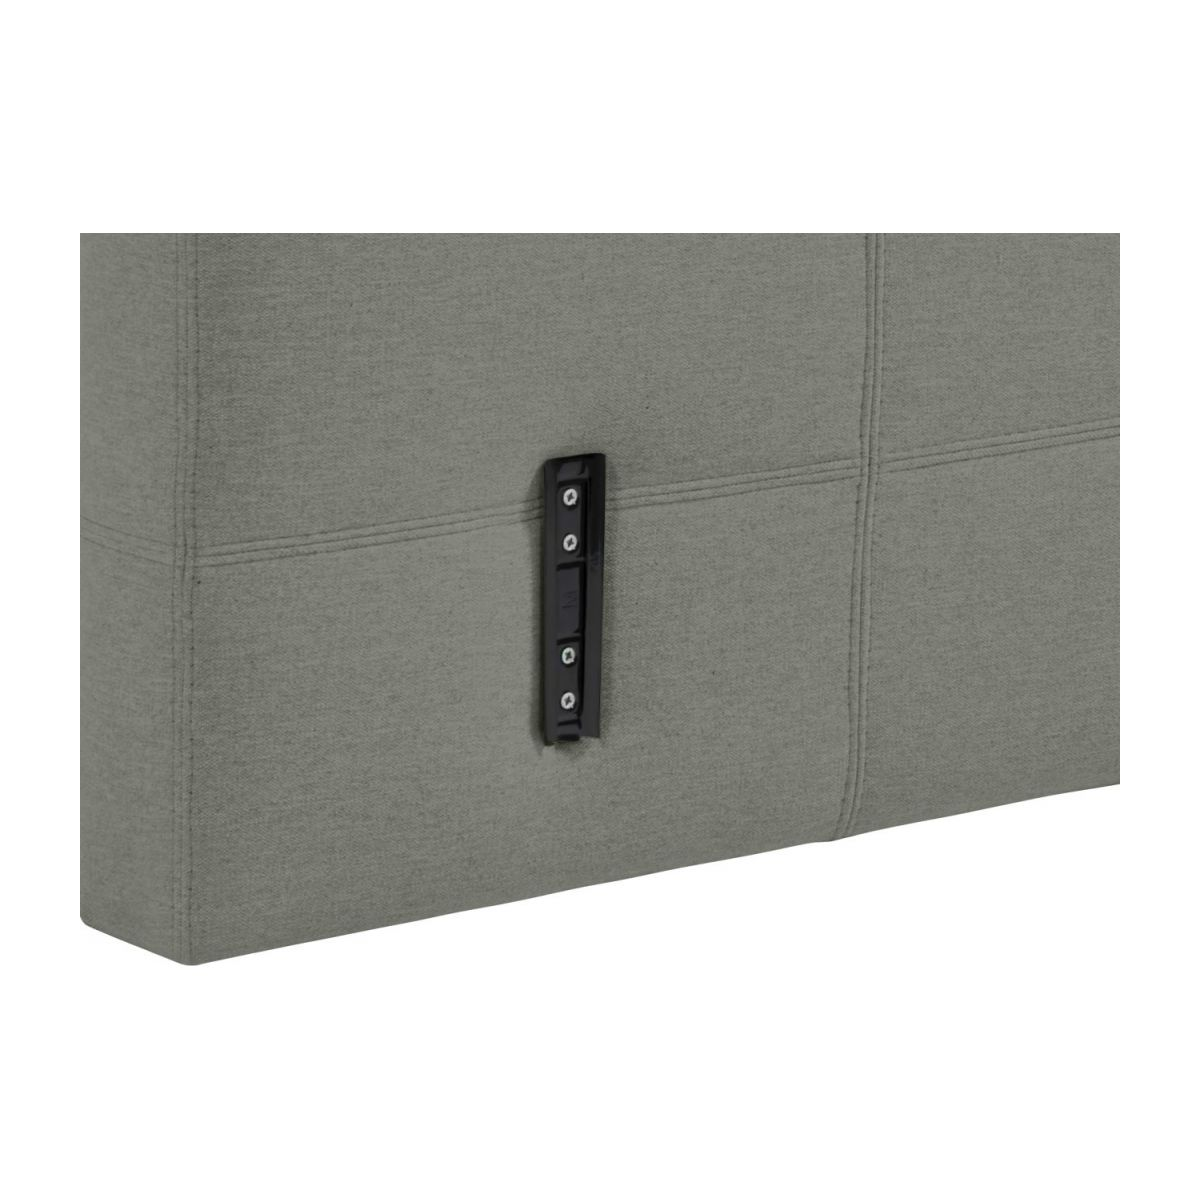 Headboard for 140cm box spring in fabric, mouse-grey n°6